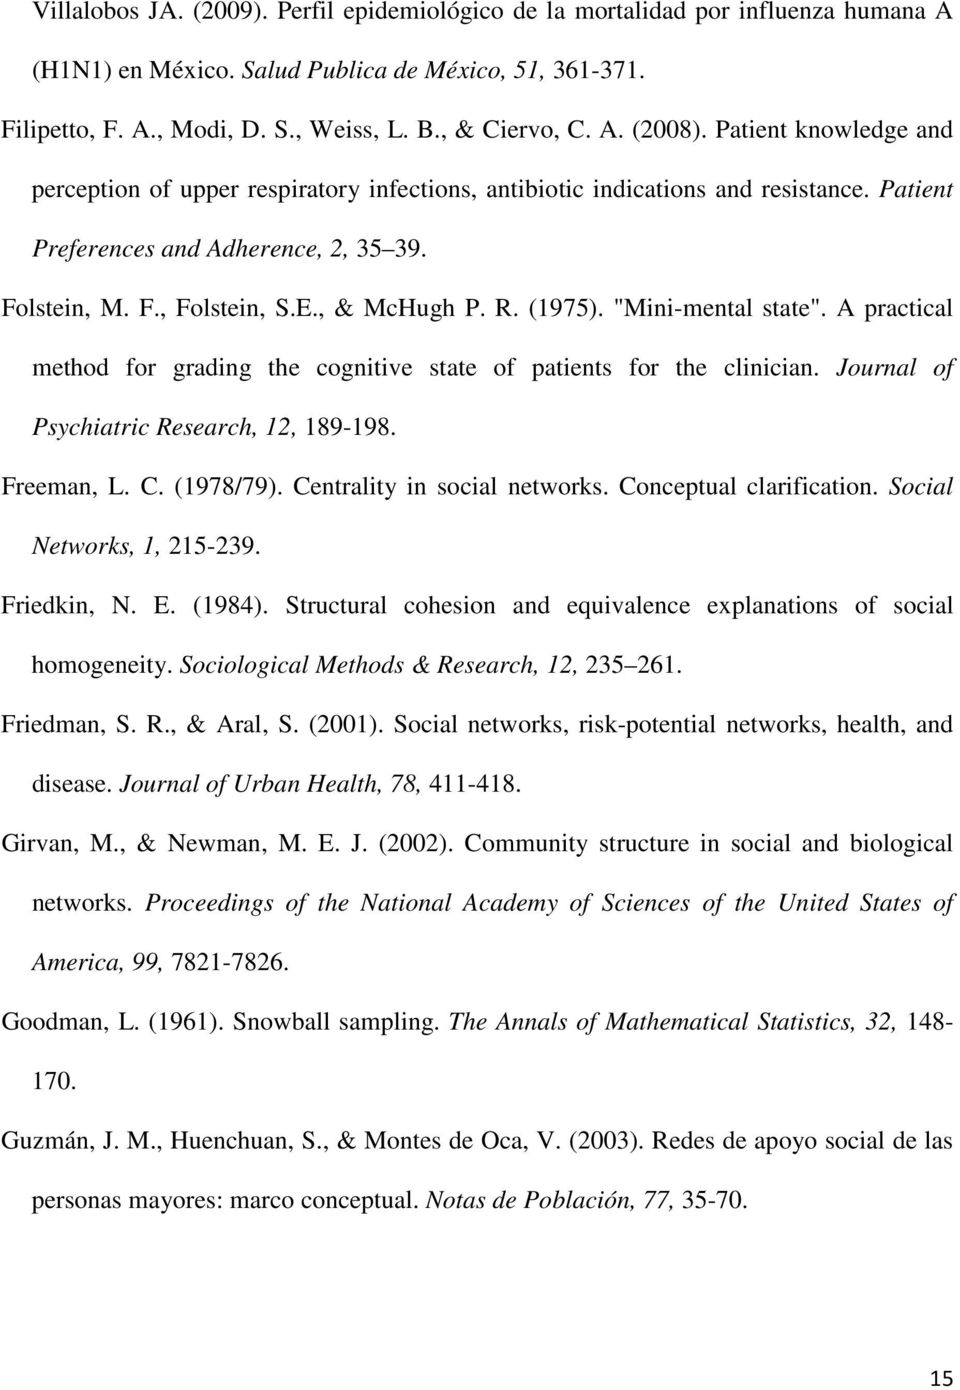 ", & McHugh P. R. (1975). ""Mini-mental state"". A practical method for grading the cognitive state of patients for the clinician. Journal of Psychiatric Research, 12, 189-198. Freeman, L. C. (1978/79)."